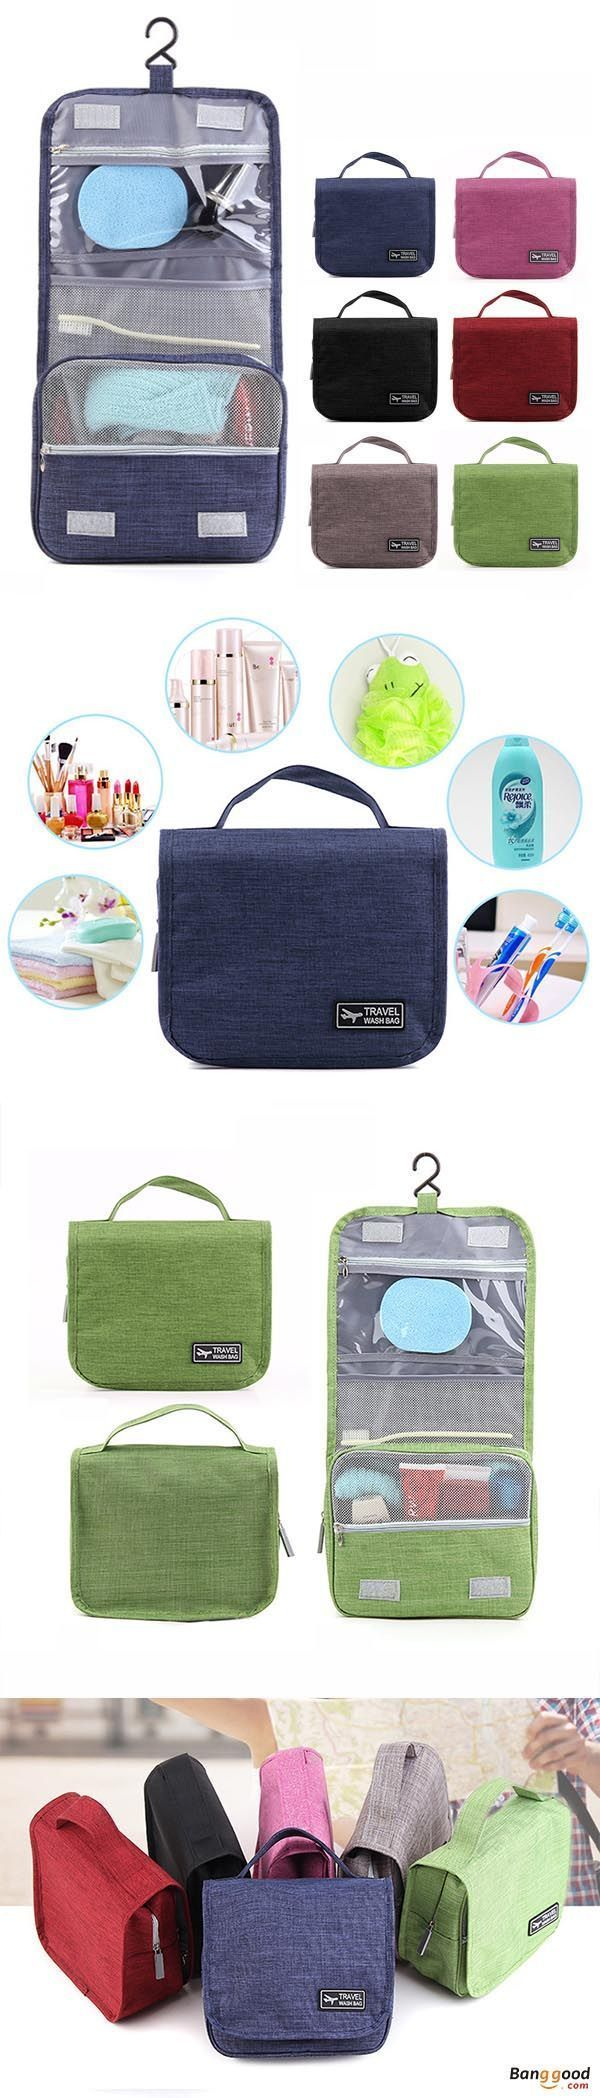 US$10.99 + Free shipping. Honana HN-TB056 Portable Cosmetic Storage Bag Travel Toilet Hanging Bag Makeup Organizer Case Pouch. Oxford fabric material, 6 Colors to Match Your Style: Black, Grey, Navy, Grey, Green, Wine Red. Click for more! #travelaccessories #makeuporganizercase #hangingmakeuporganizer